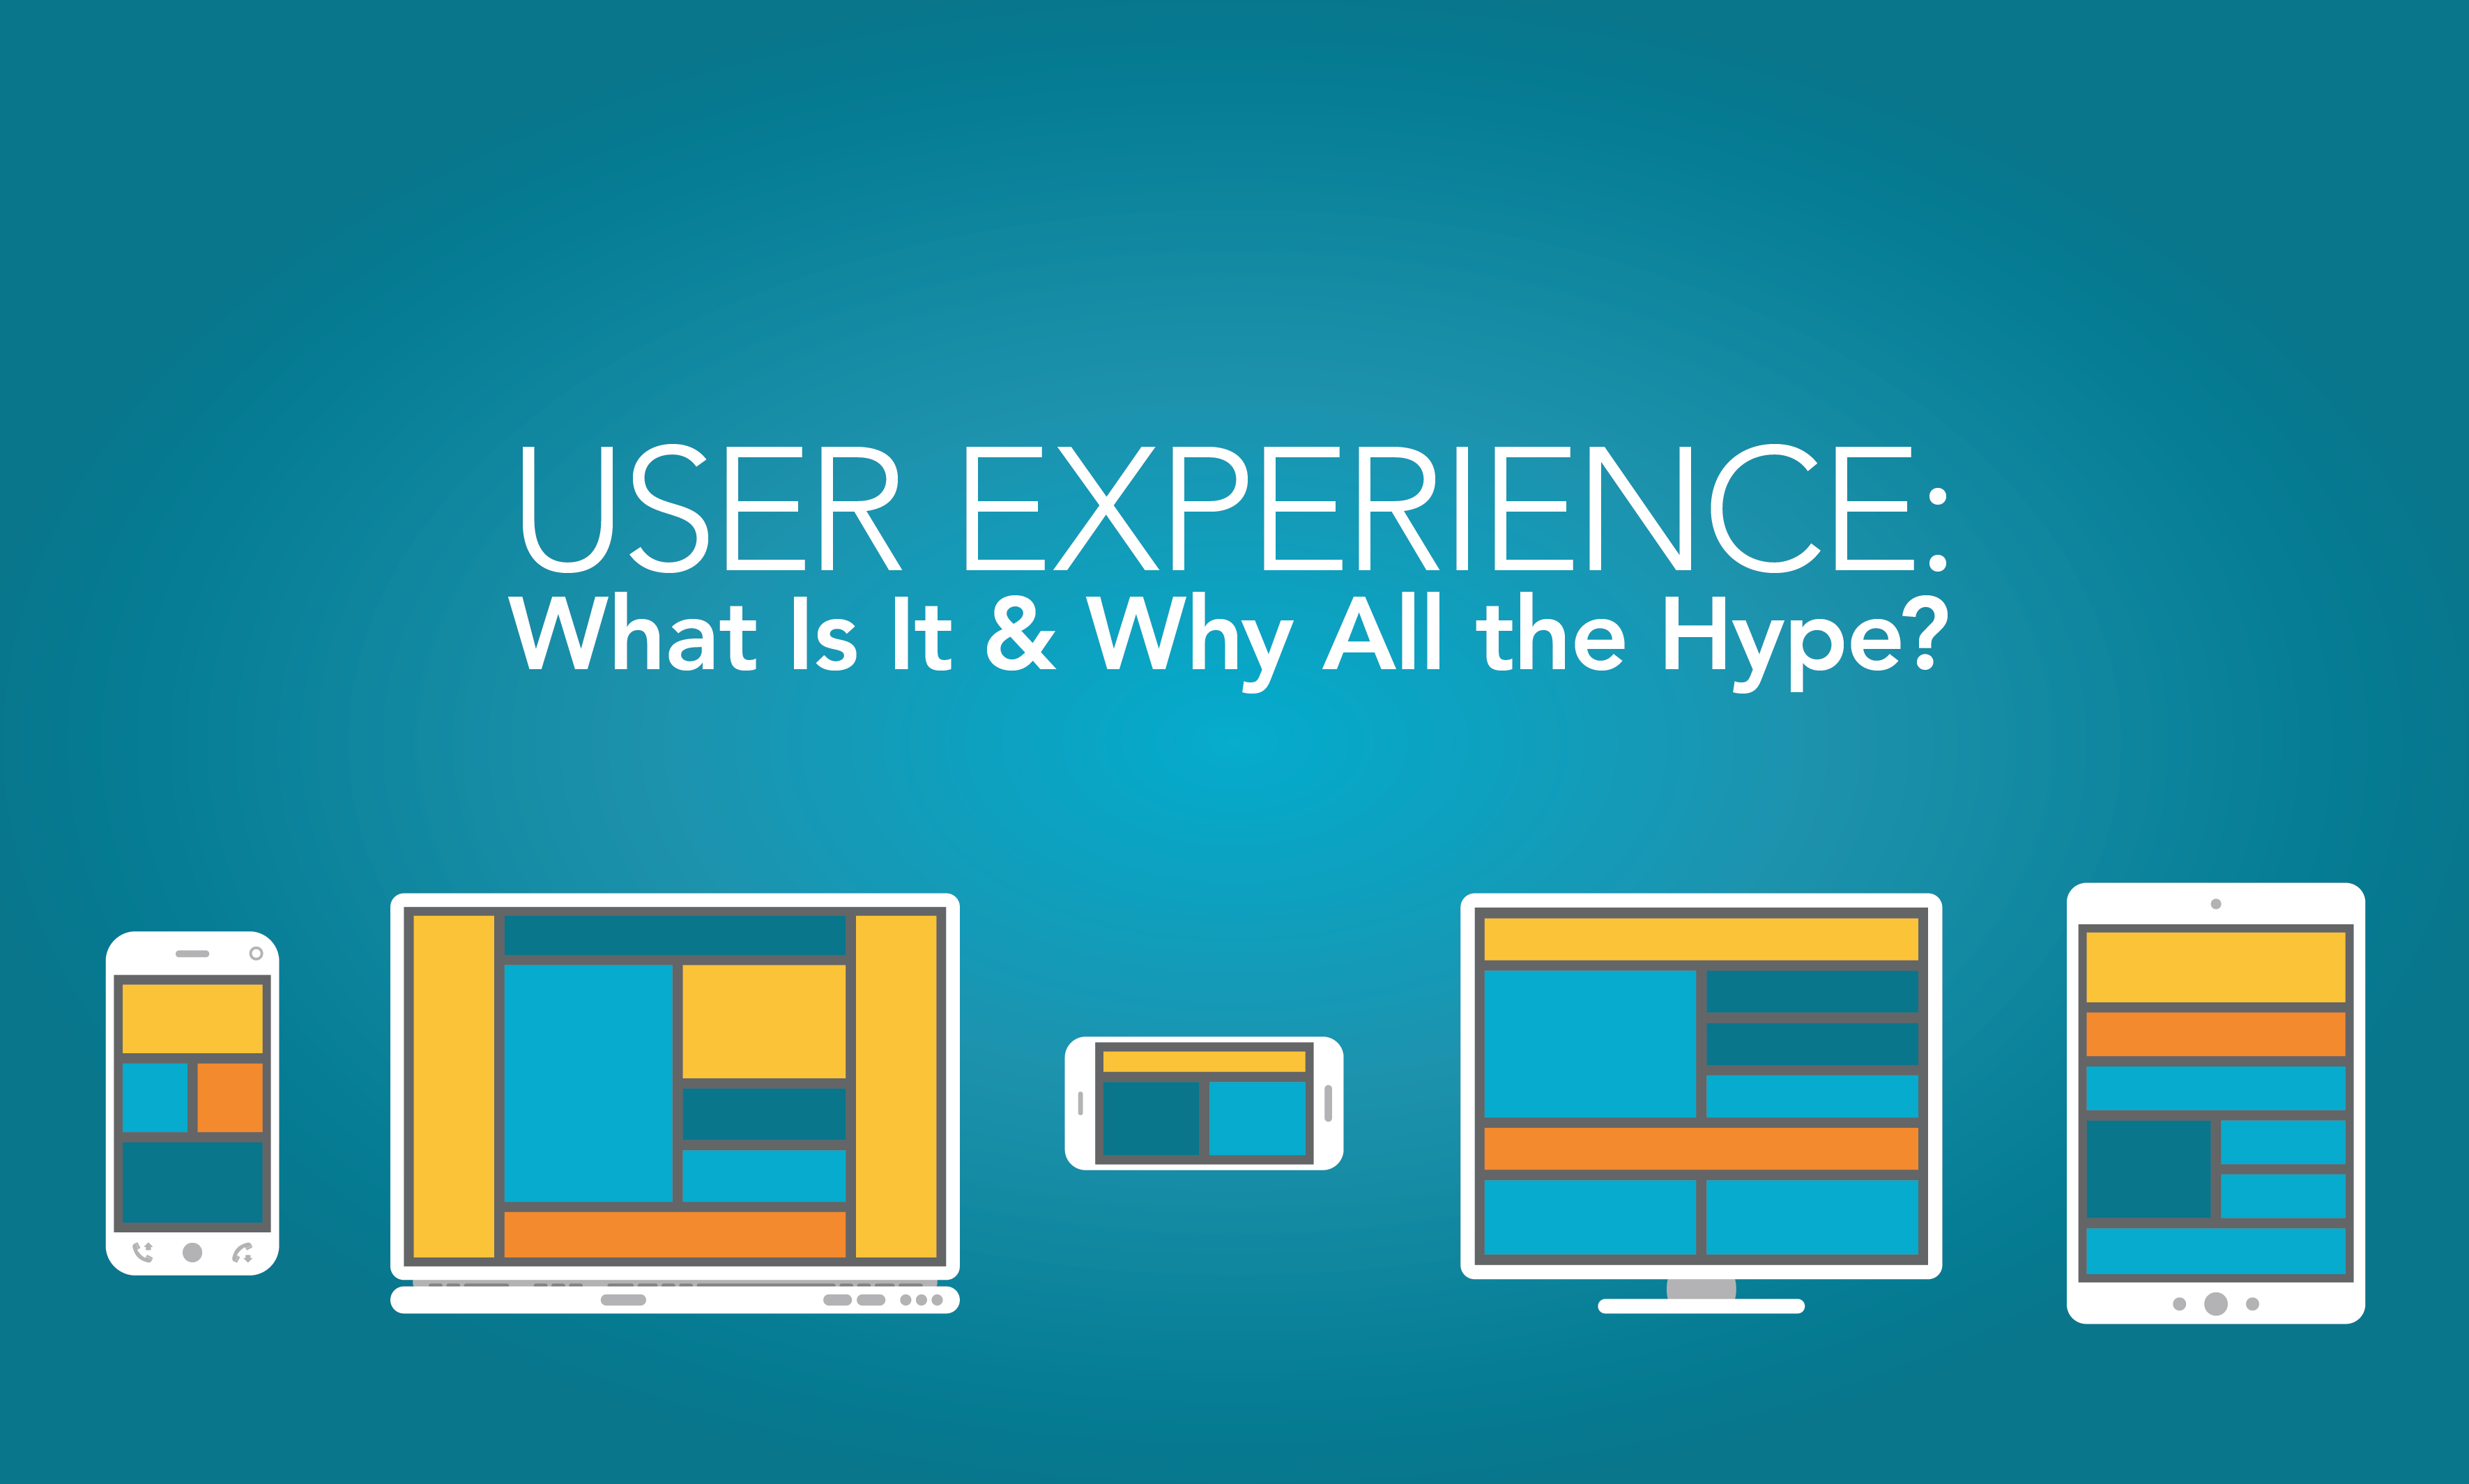 User experience: What is it and why all the hype?